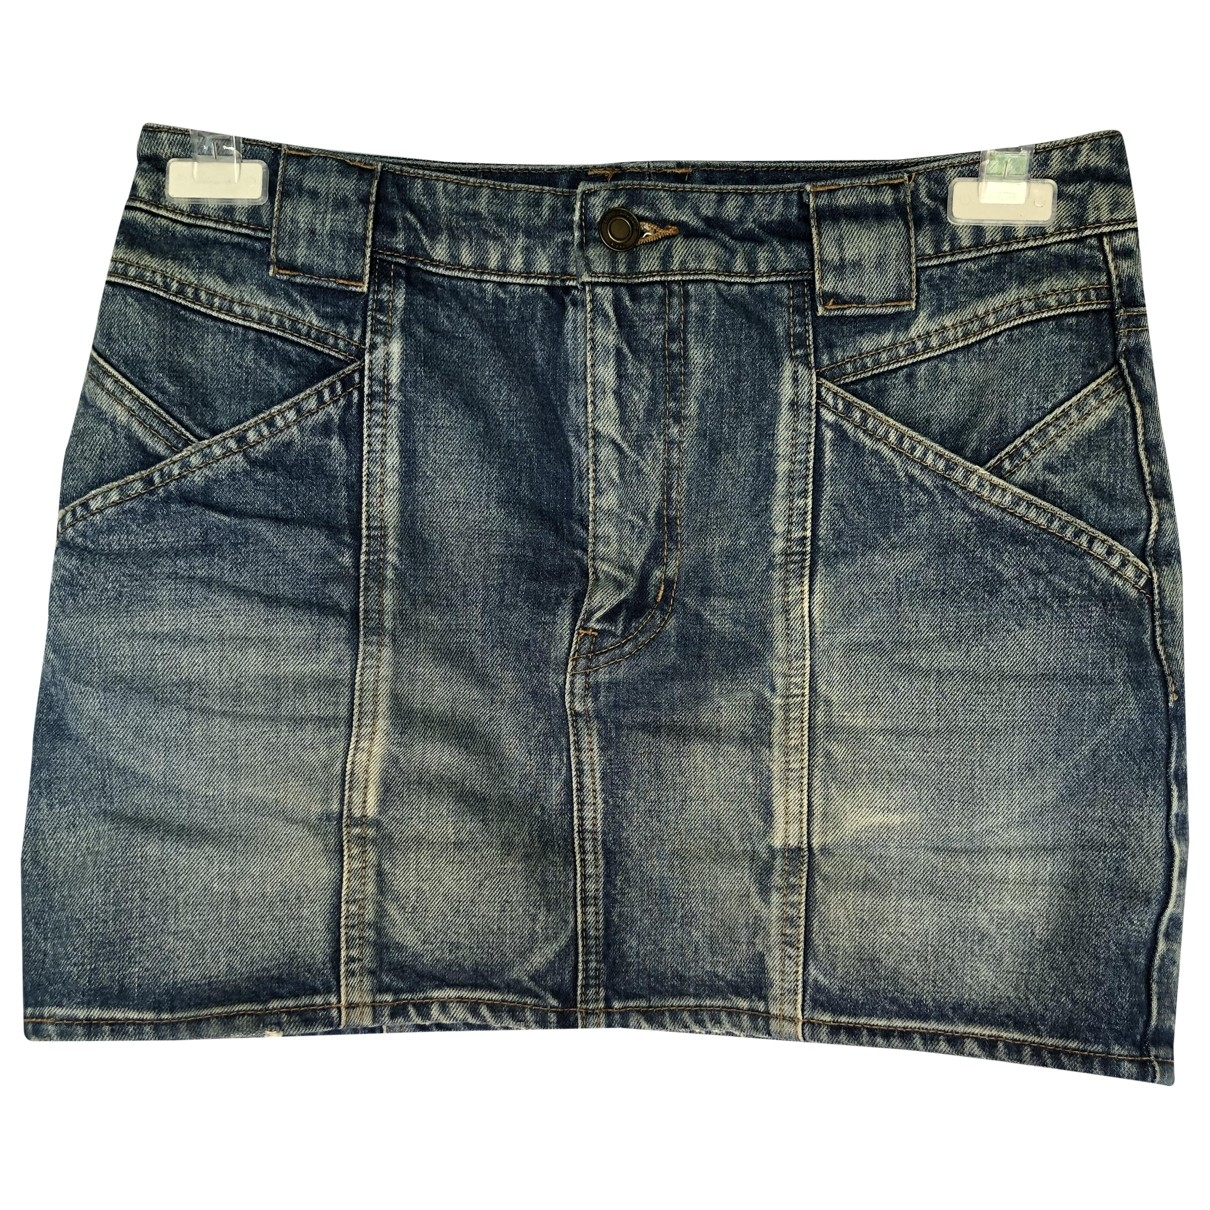 Saint Laurent N Blue Denim - Jeans Skirt for Women